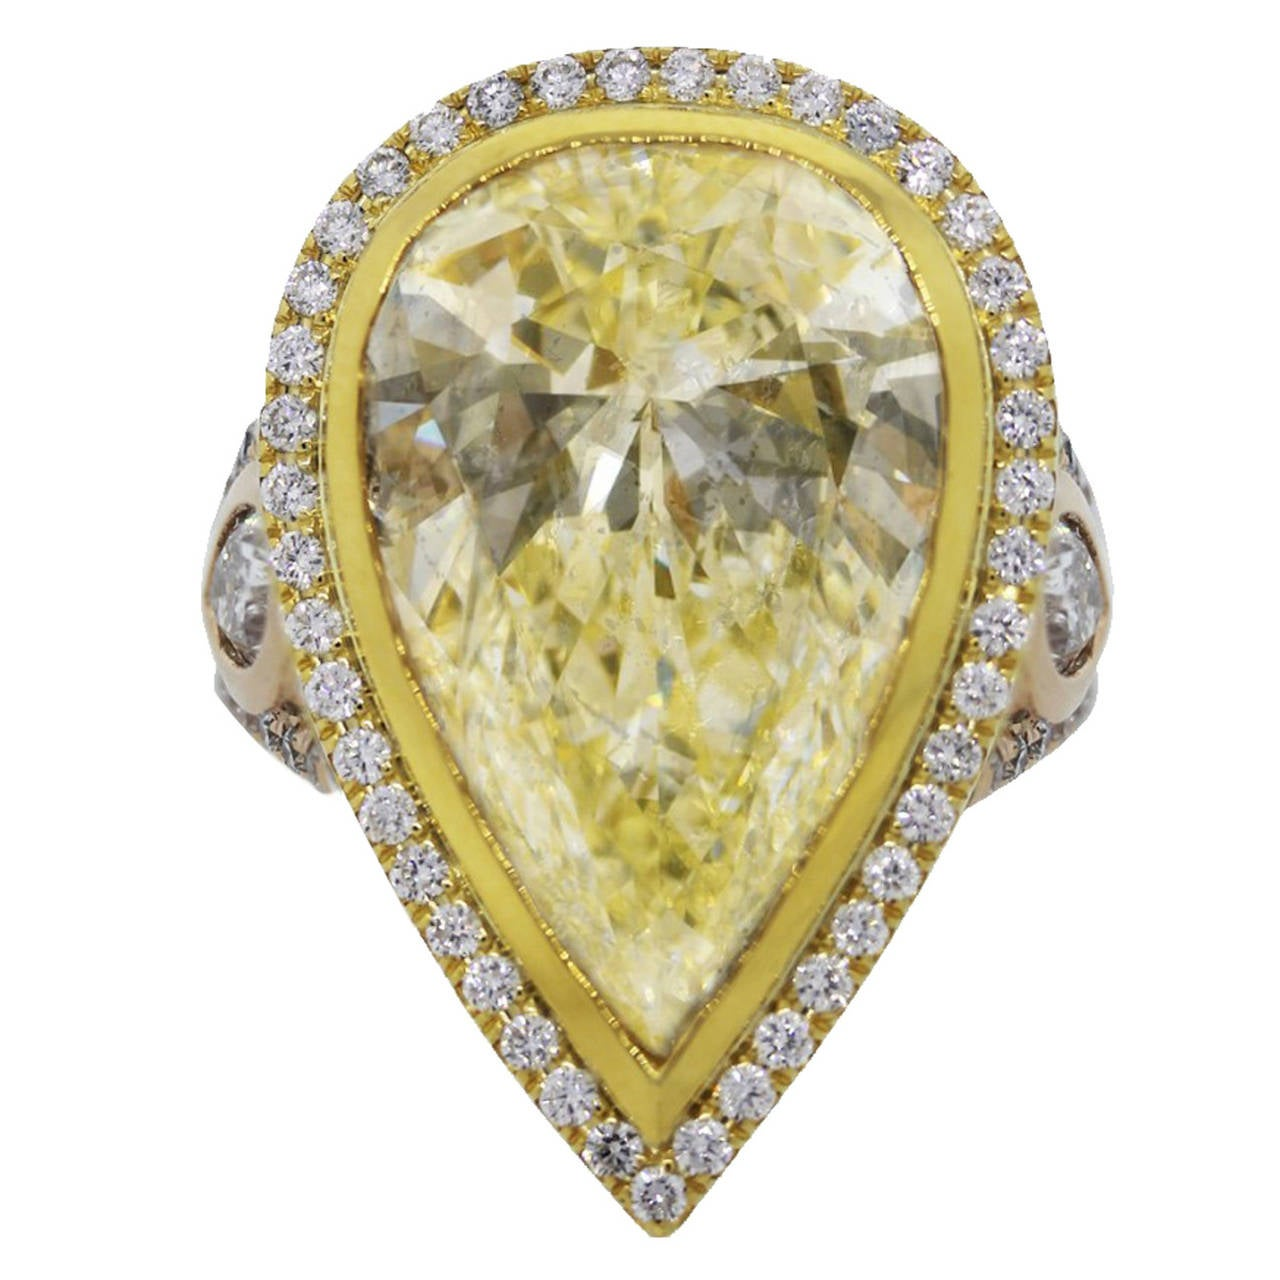 1433 Carat Fancy Light Yellow Pear Shaped Diamond Gold Engagement Ring 1